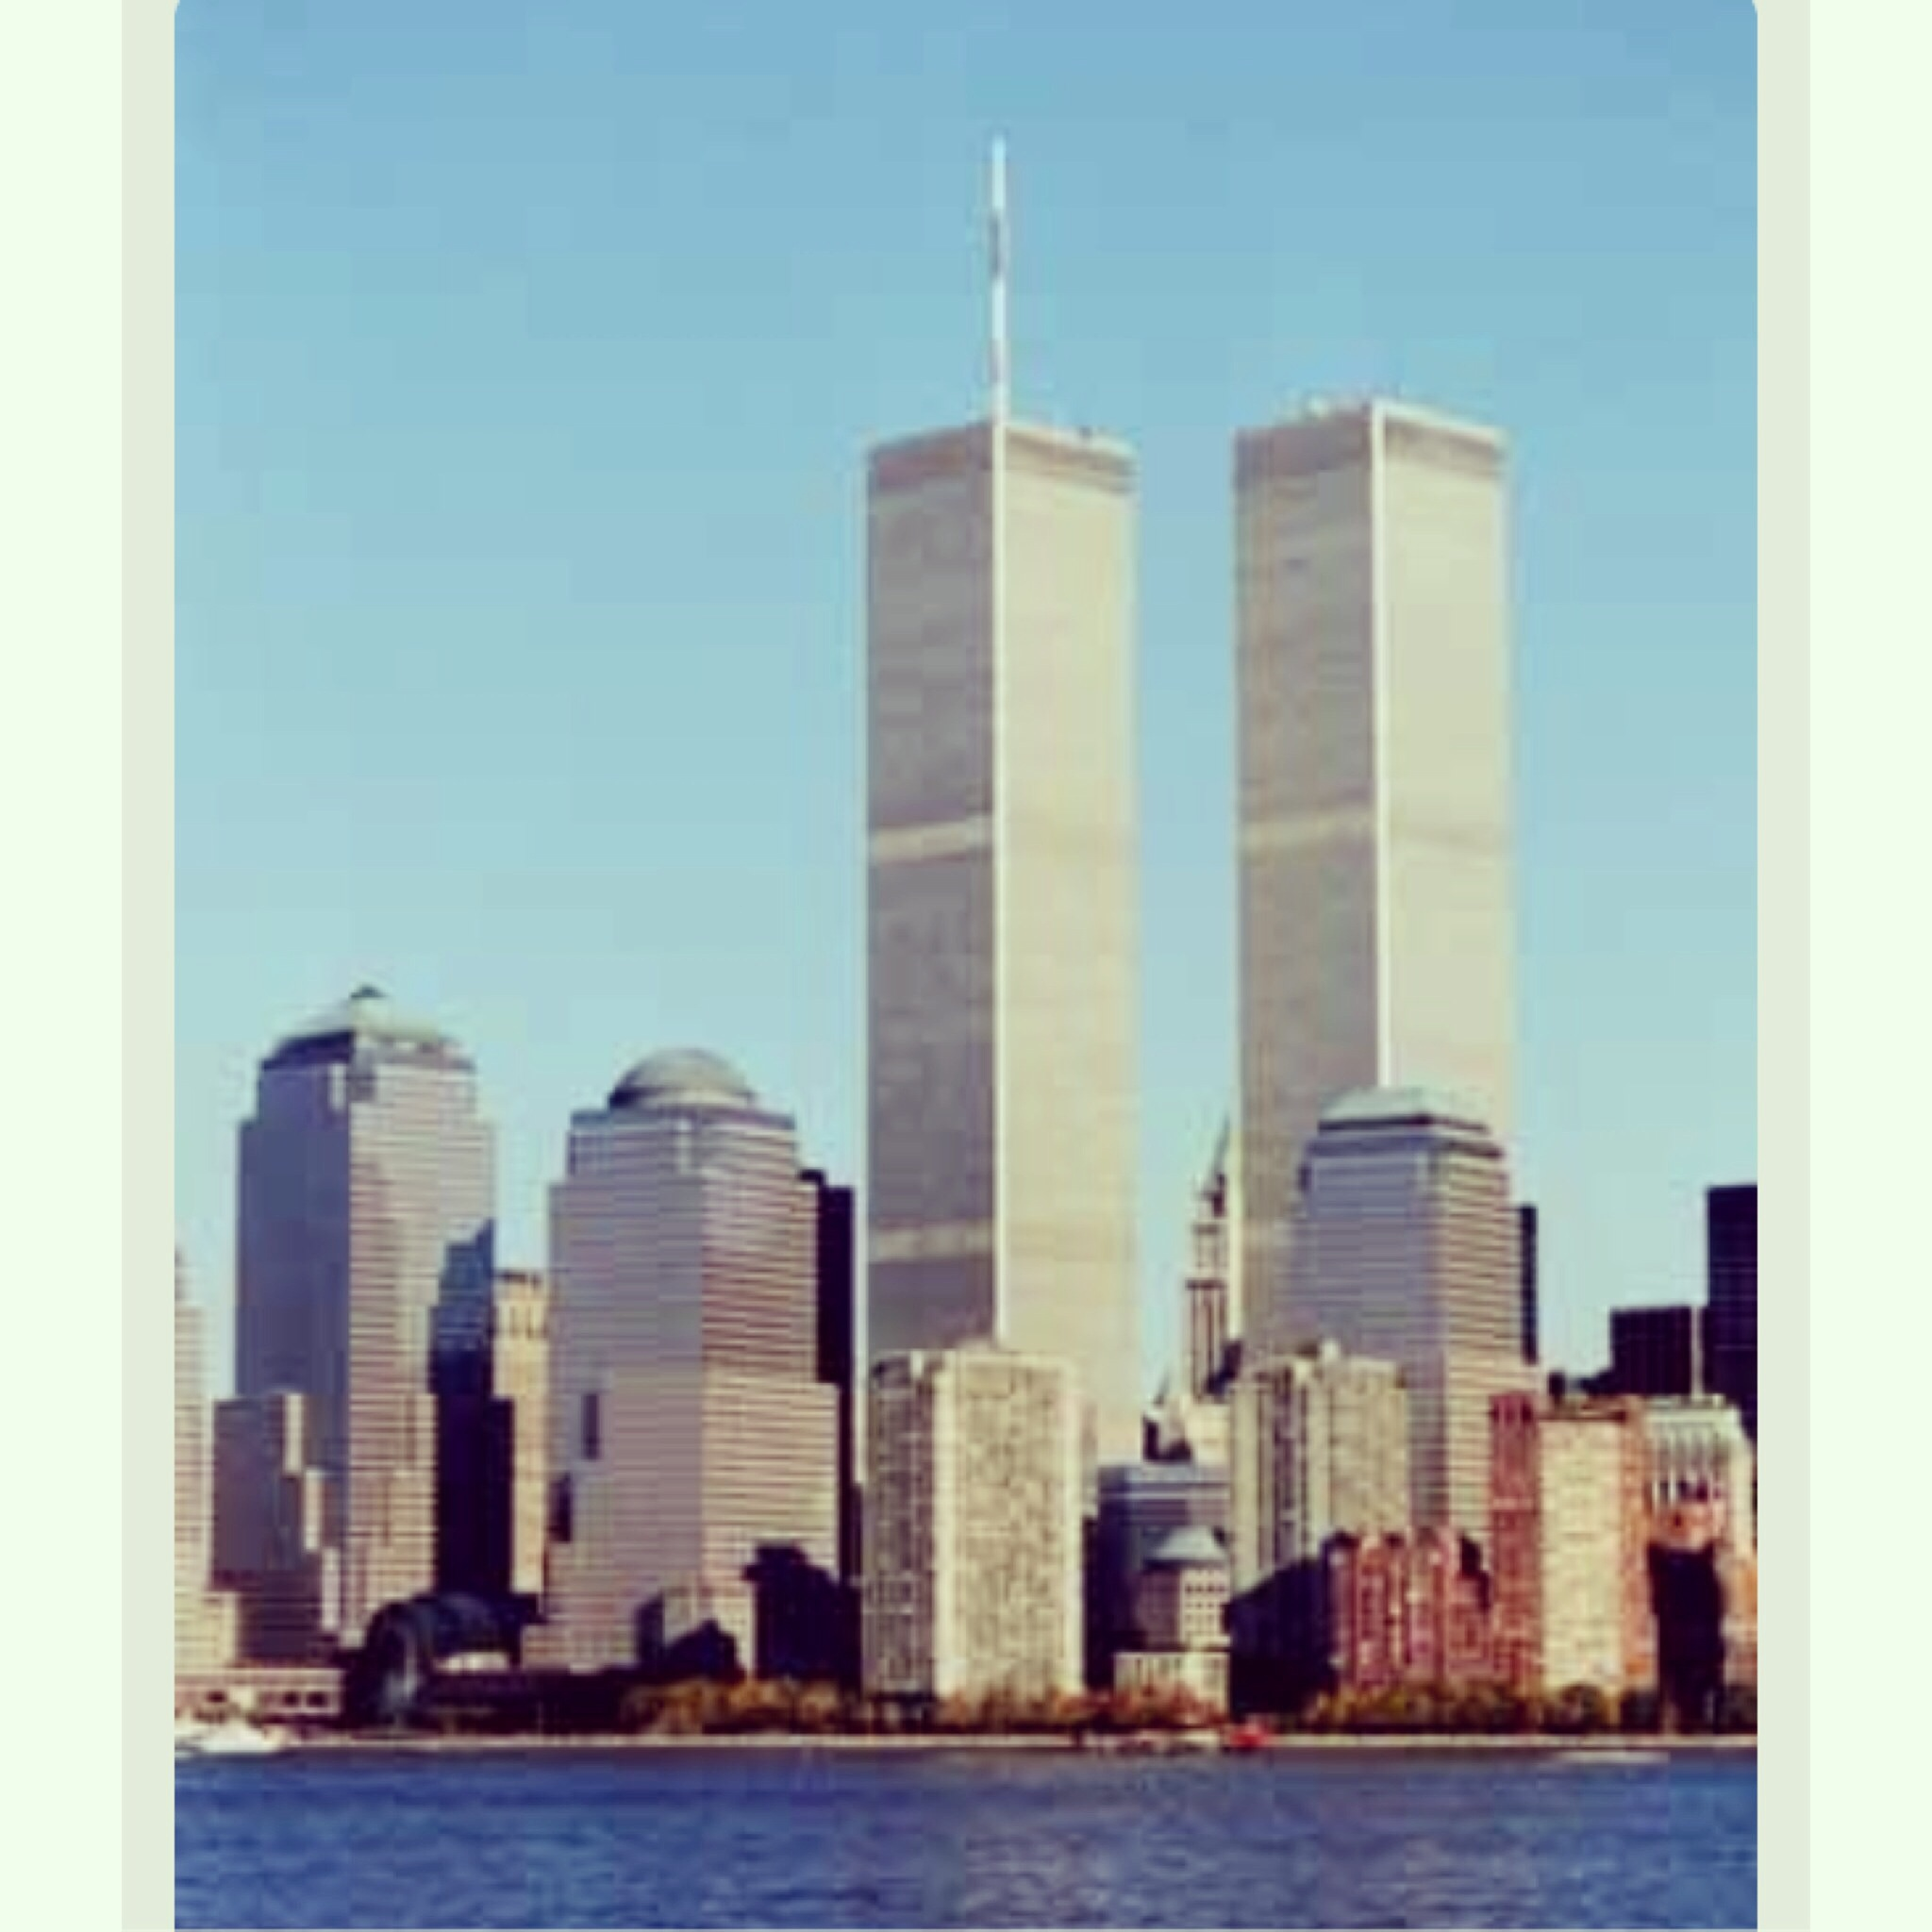 Never Forget. United we stand.